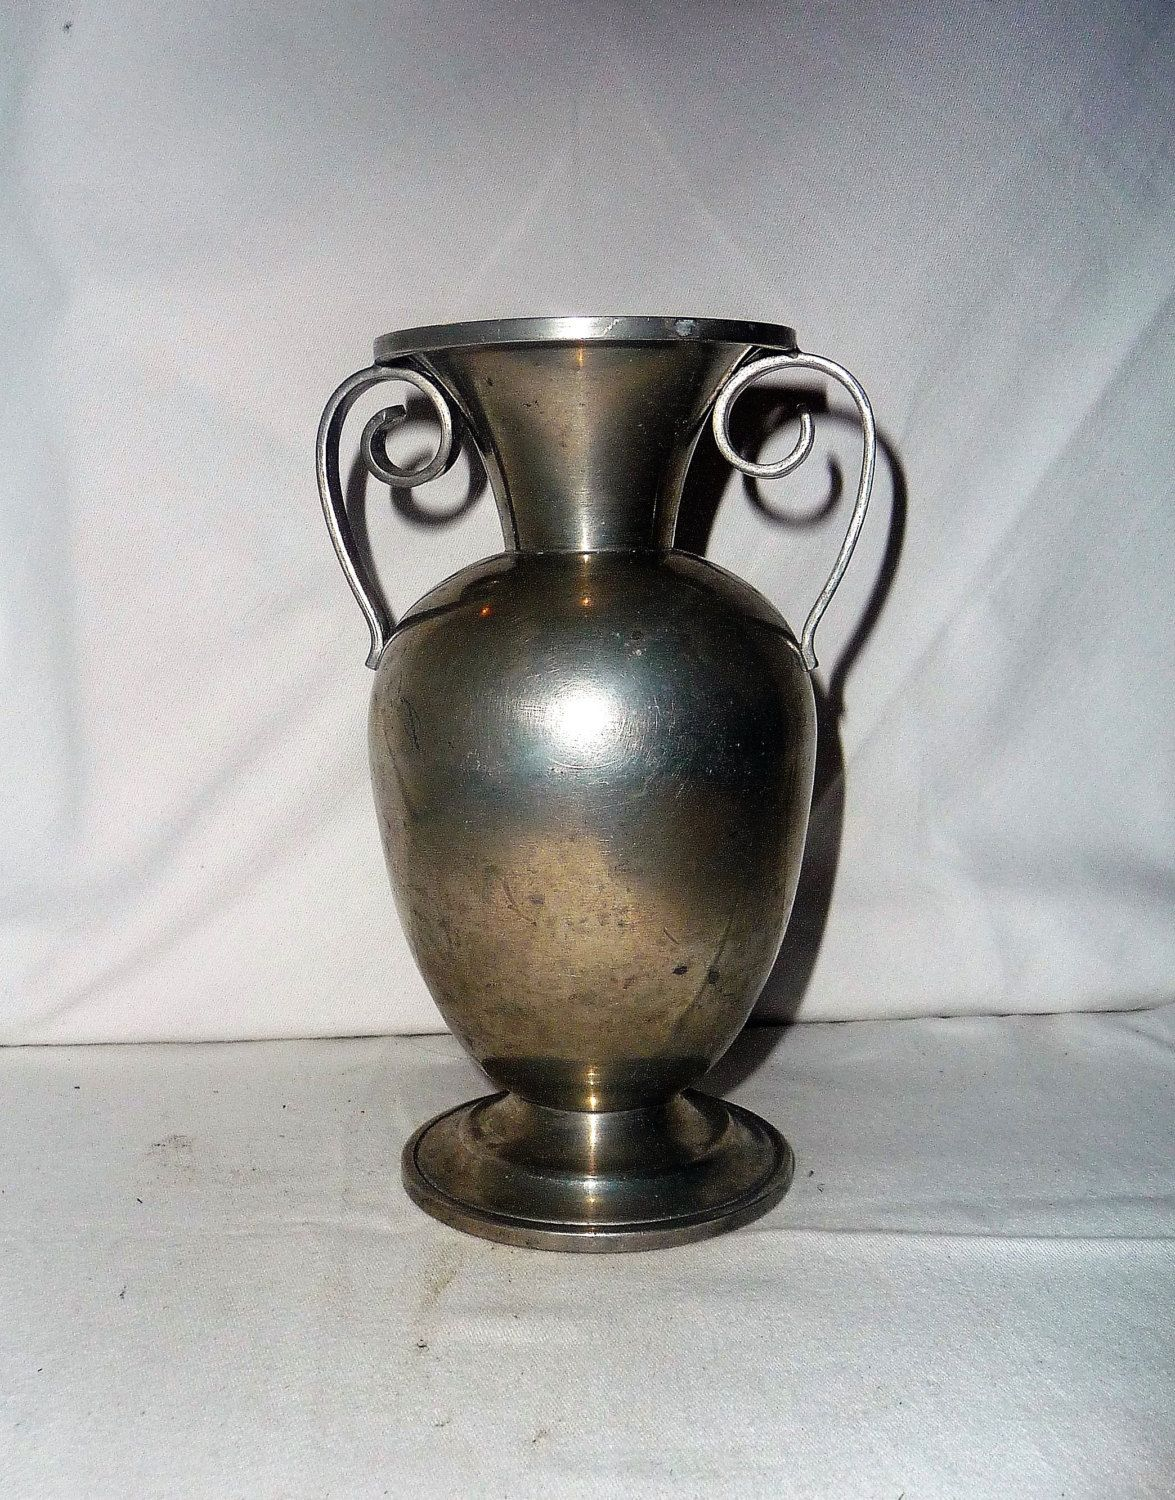 Metal Centerpiece Bowl Vintage Antique Pewter Vase With Two Handle Metal Vase